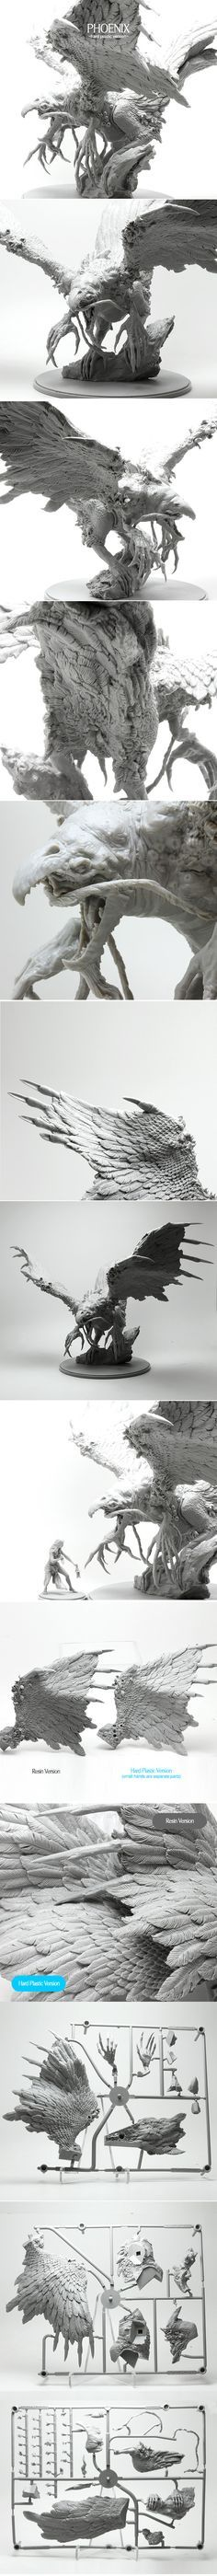 https://www.kickstarter.com/projects/poots/kingdom-death-monster  Kingdom Death - The Phoenix